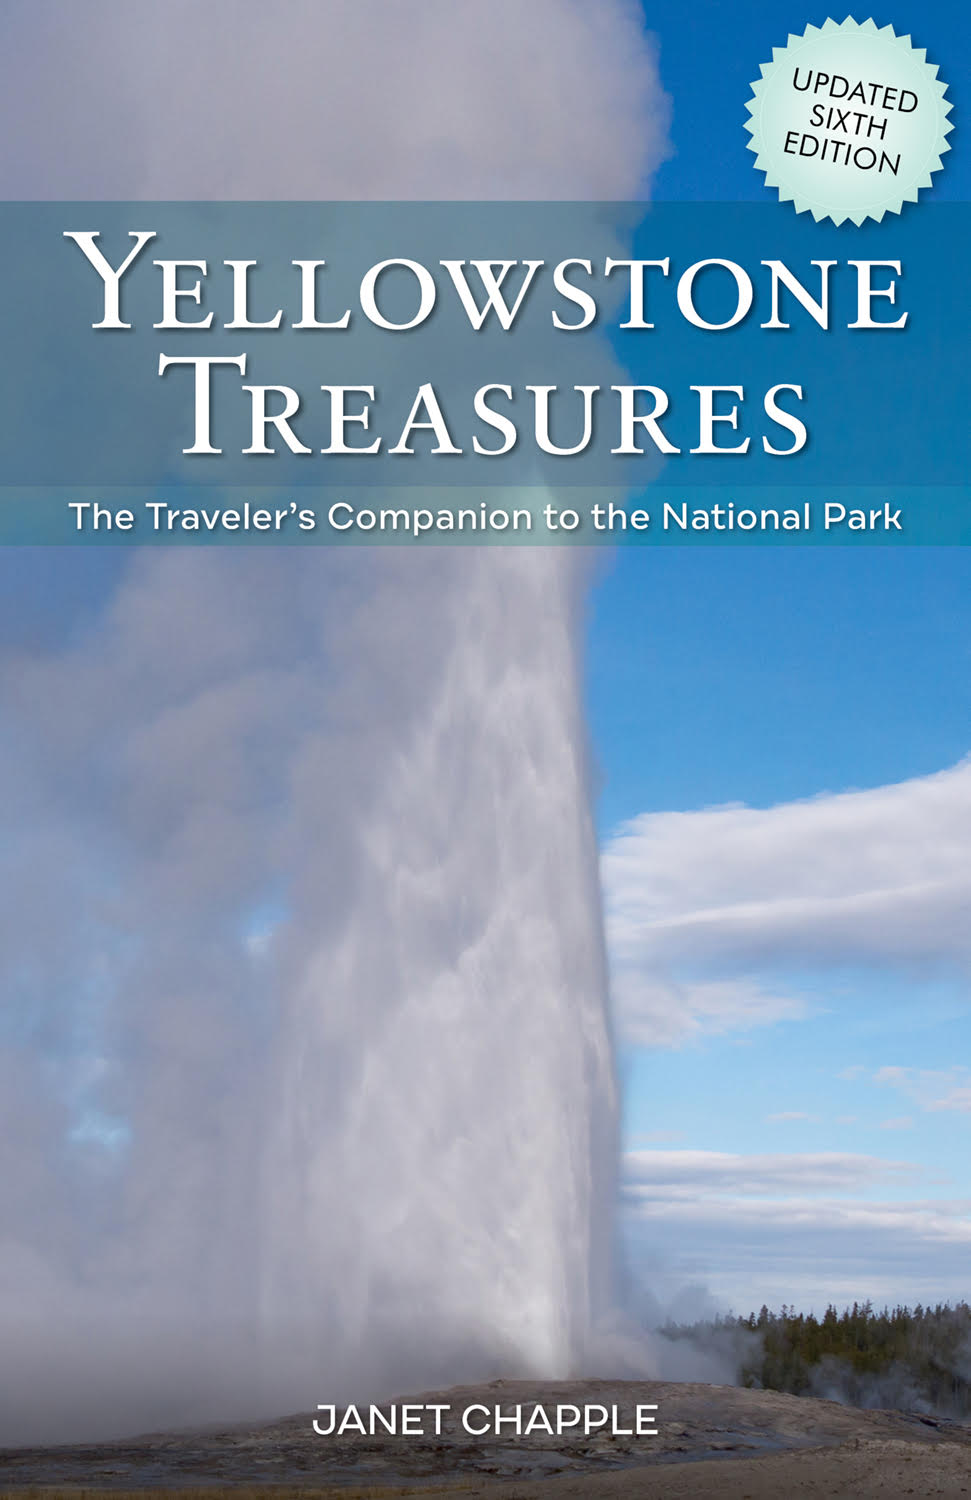 Yellowstone Treasures cover 6th edition 2020